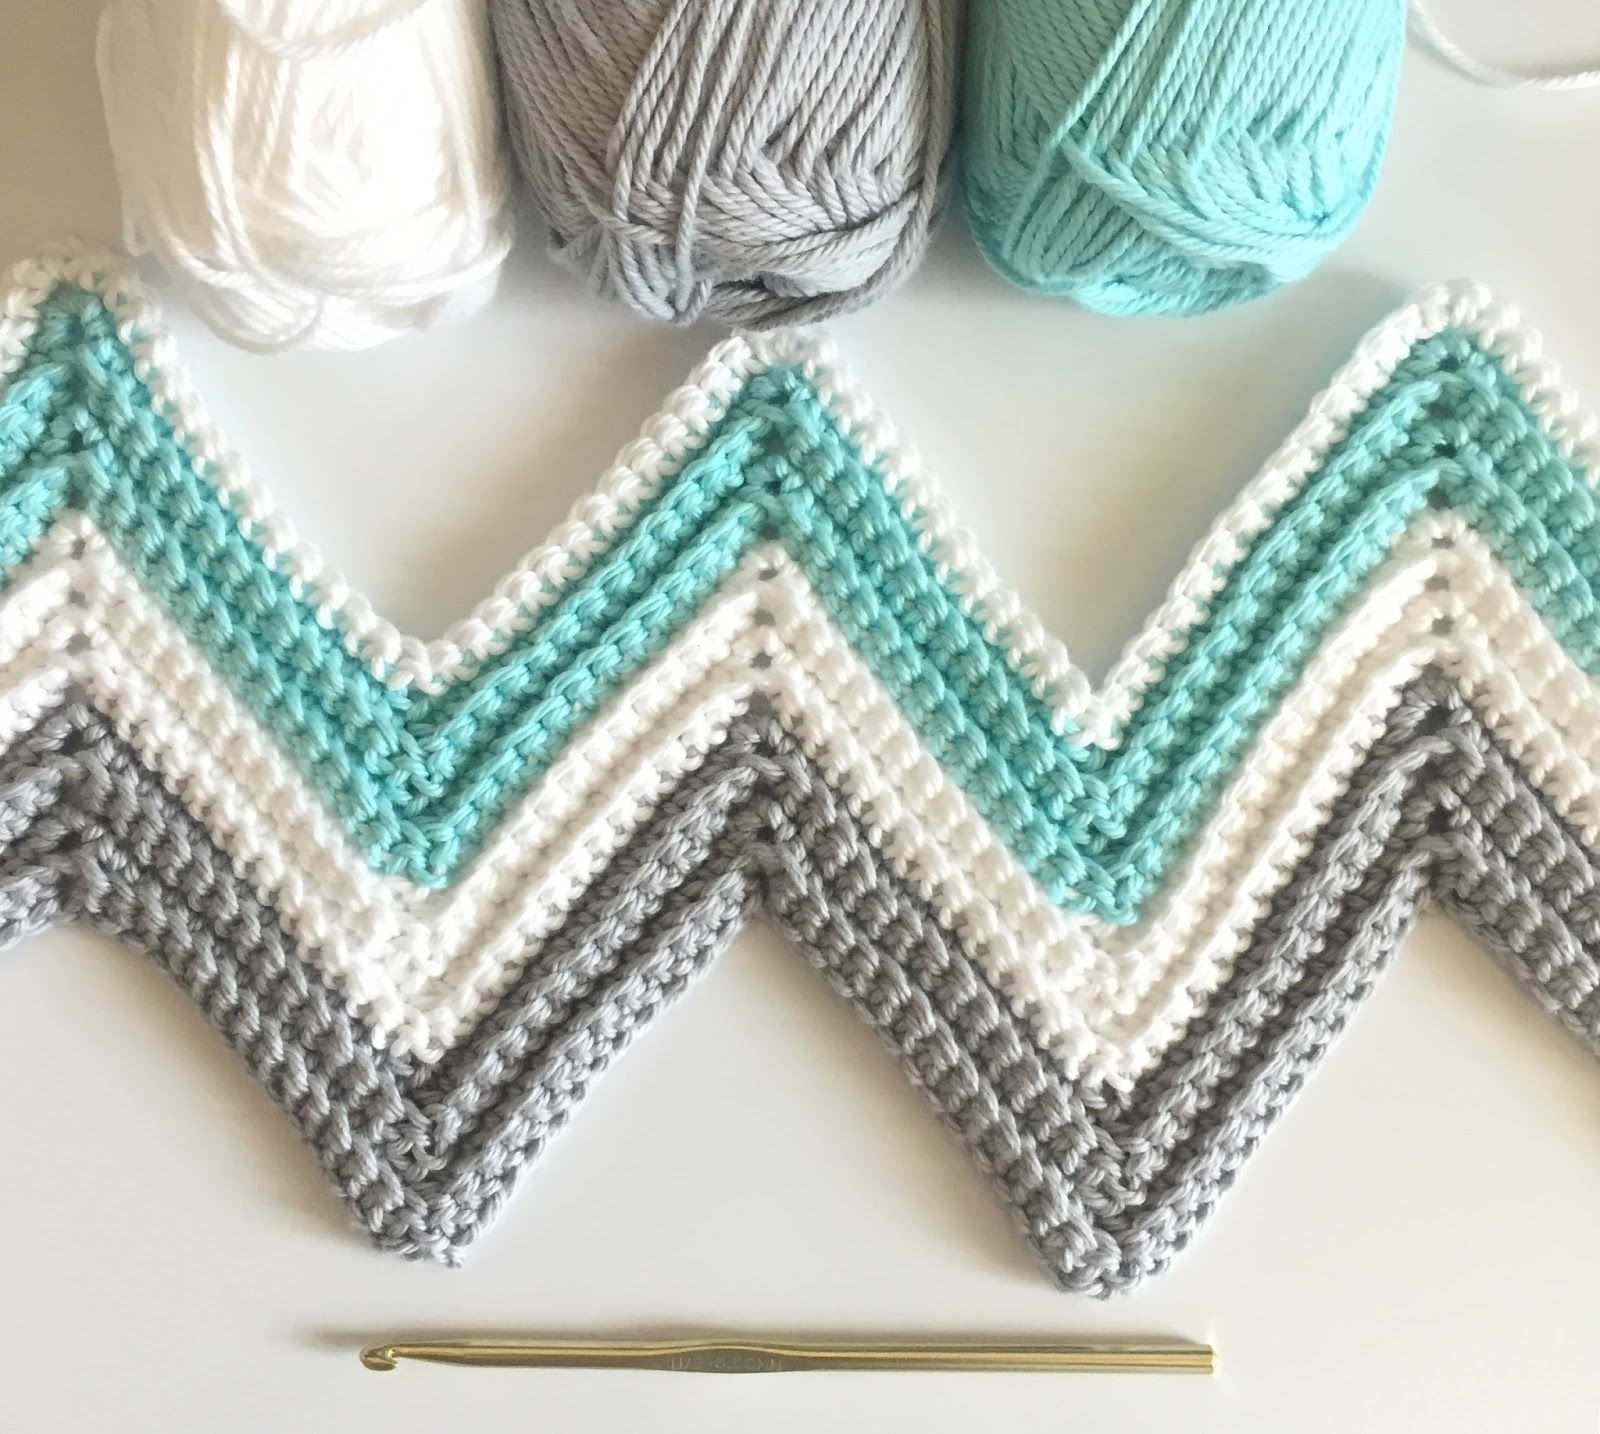 Crochet Baby Blanket Cotton Pattern : Daisy Farm Crafts: Single Crochet Chevron Blanket in Mint ...